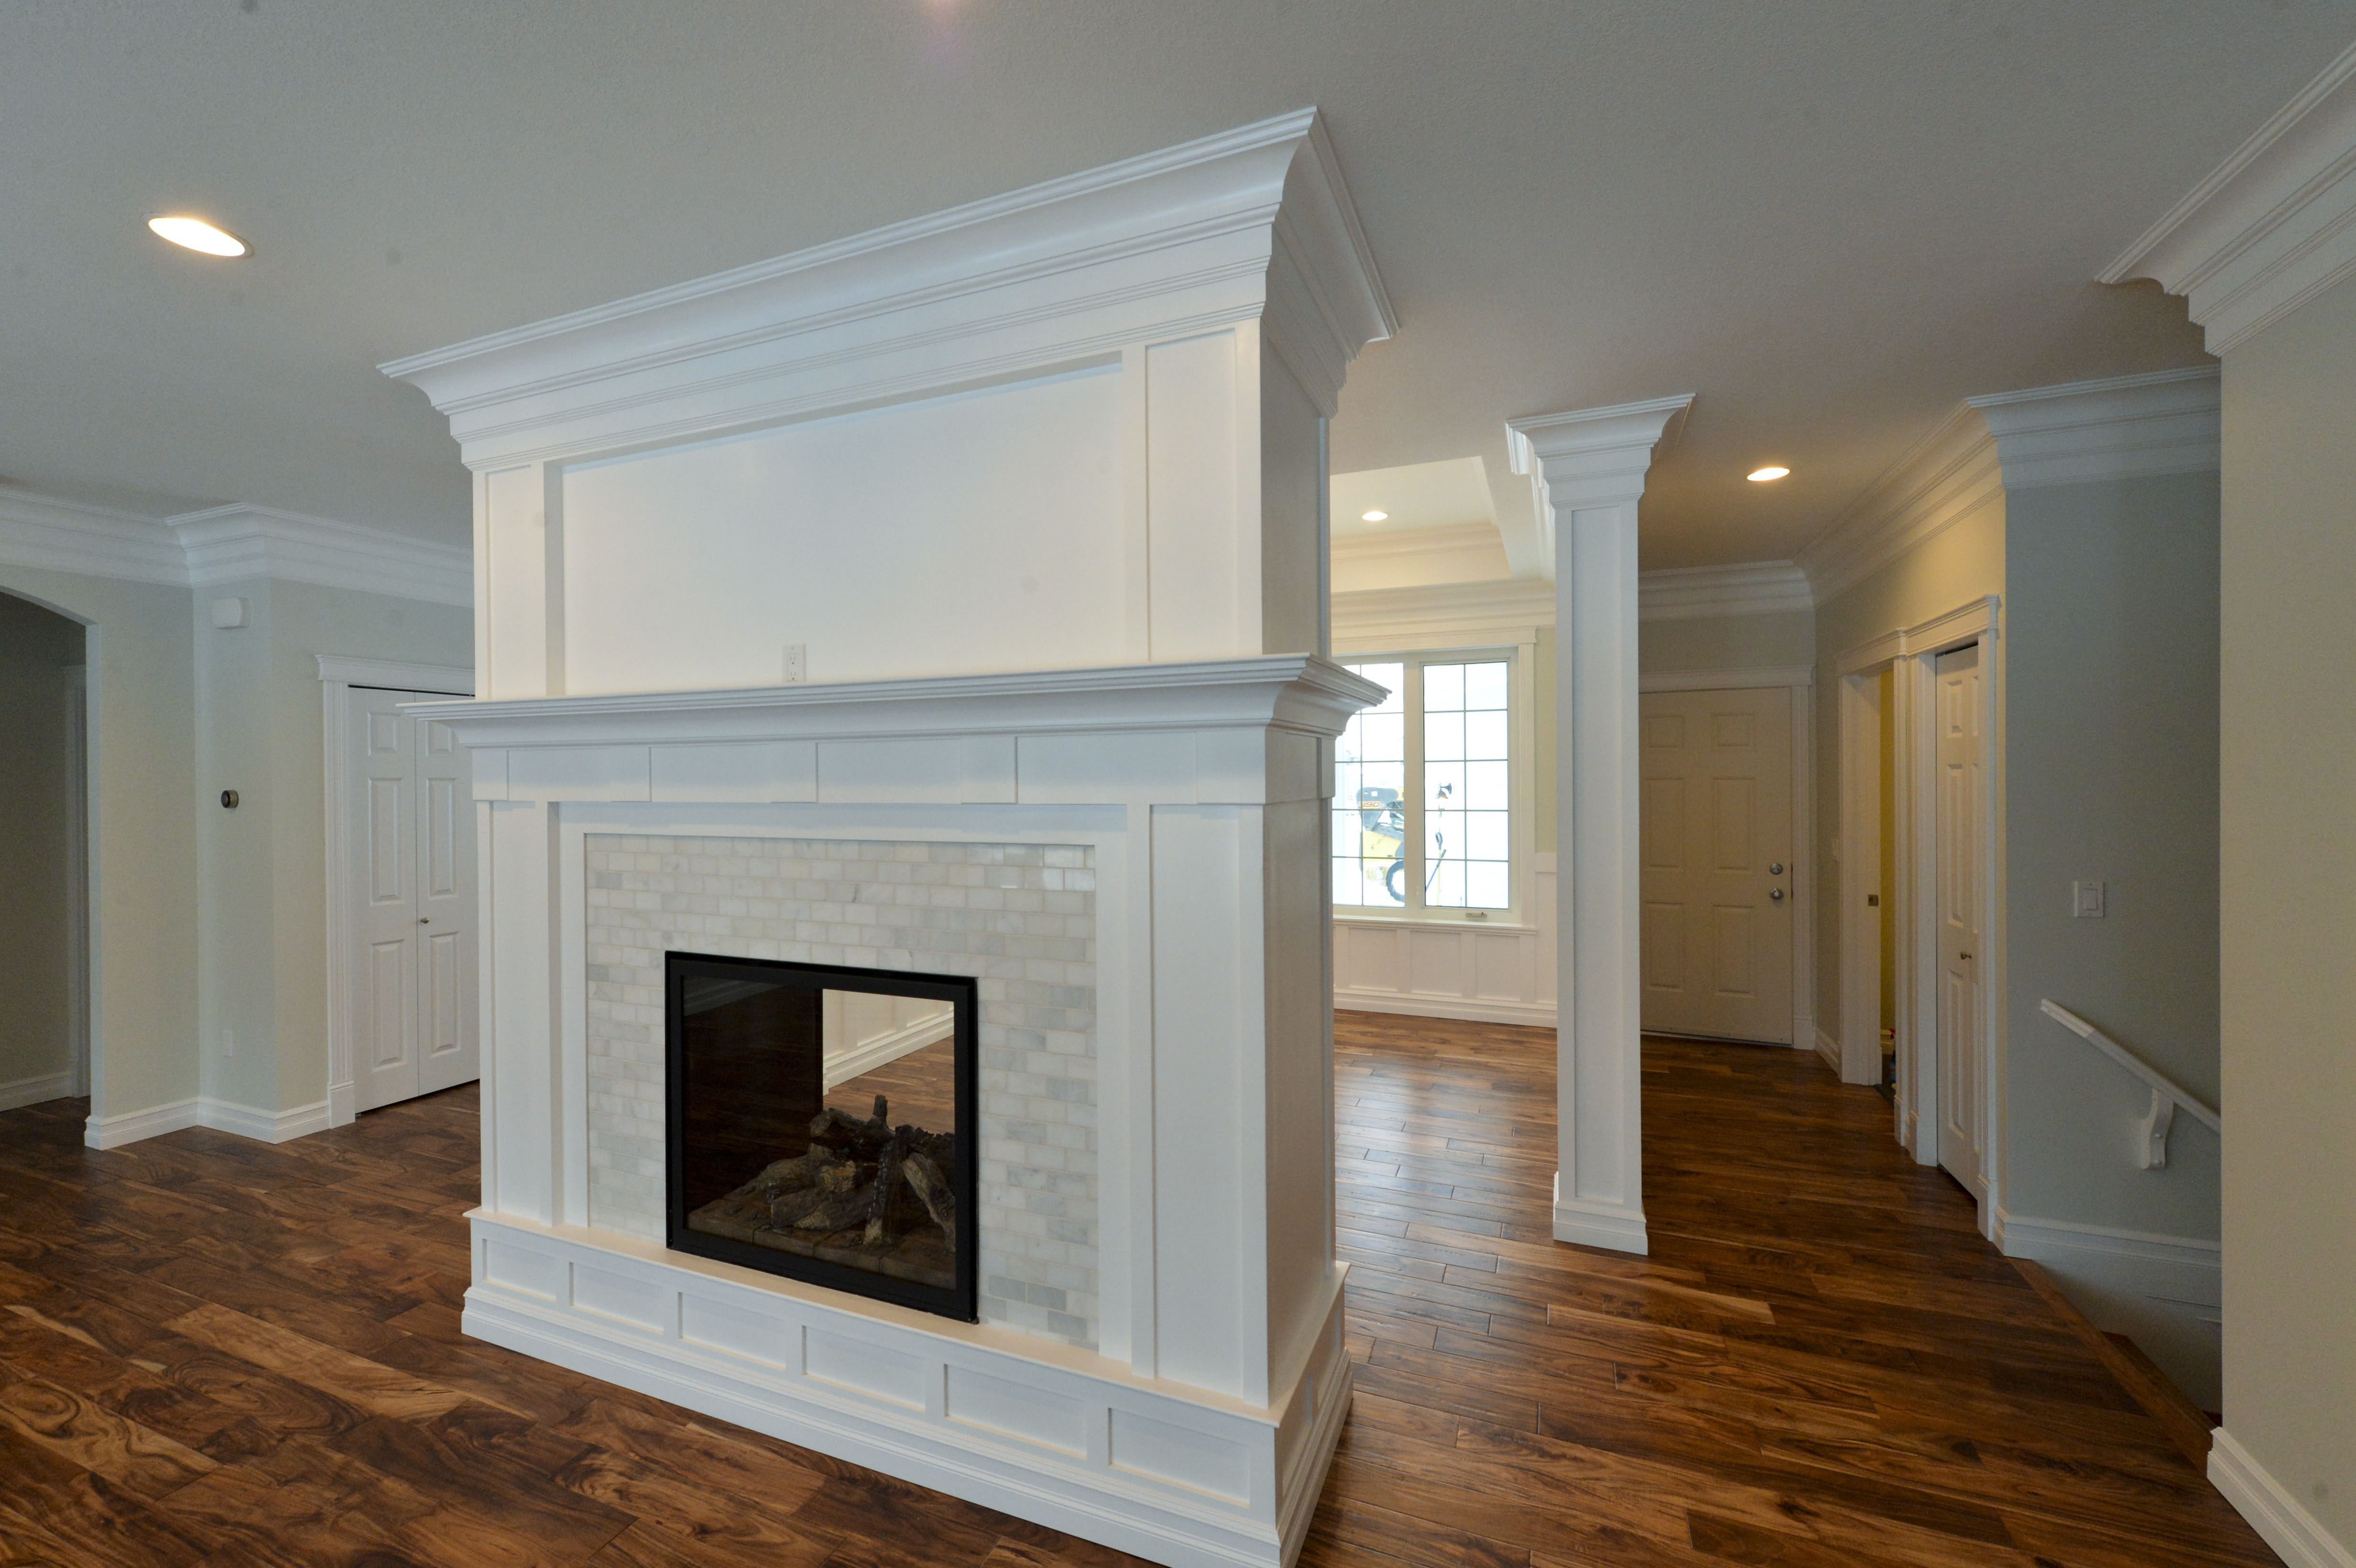 See through fireplace flooring dream house pinterest for See thru fireplace